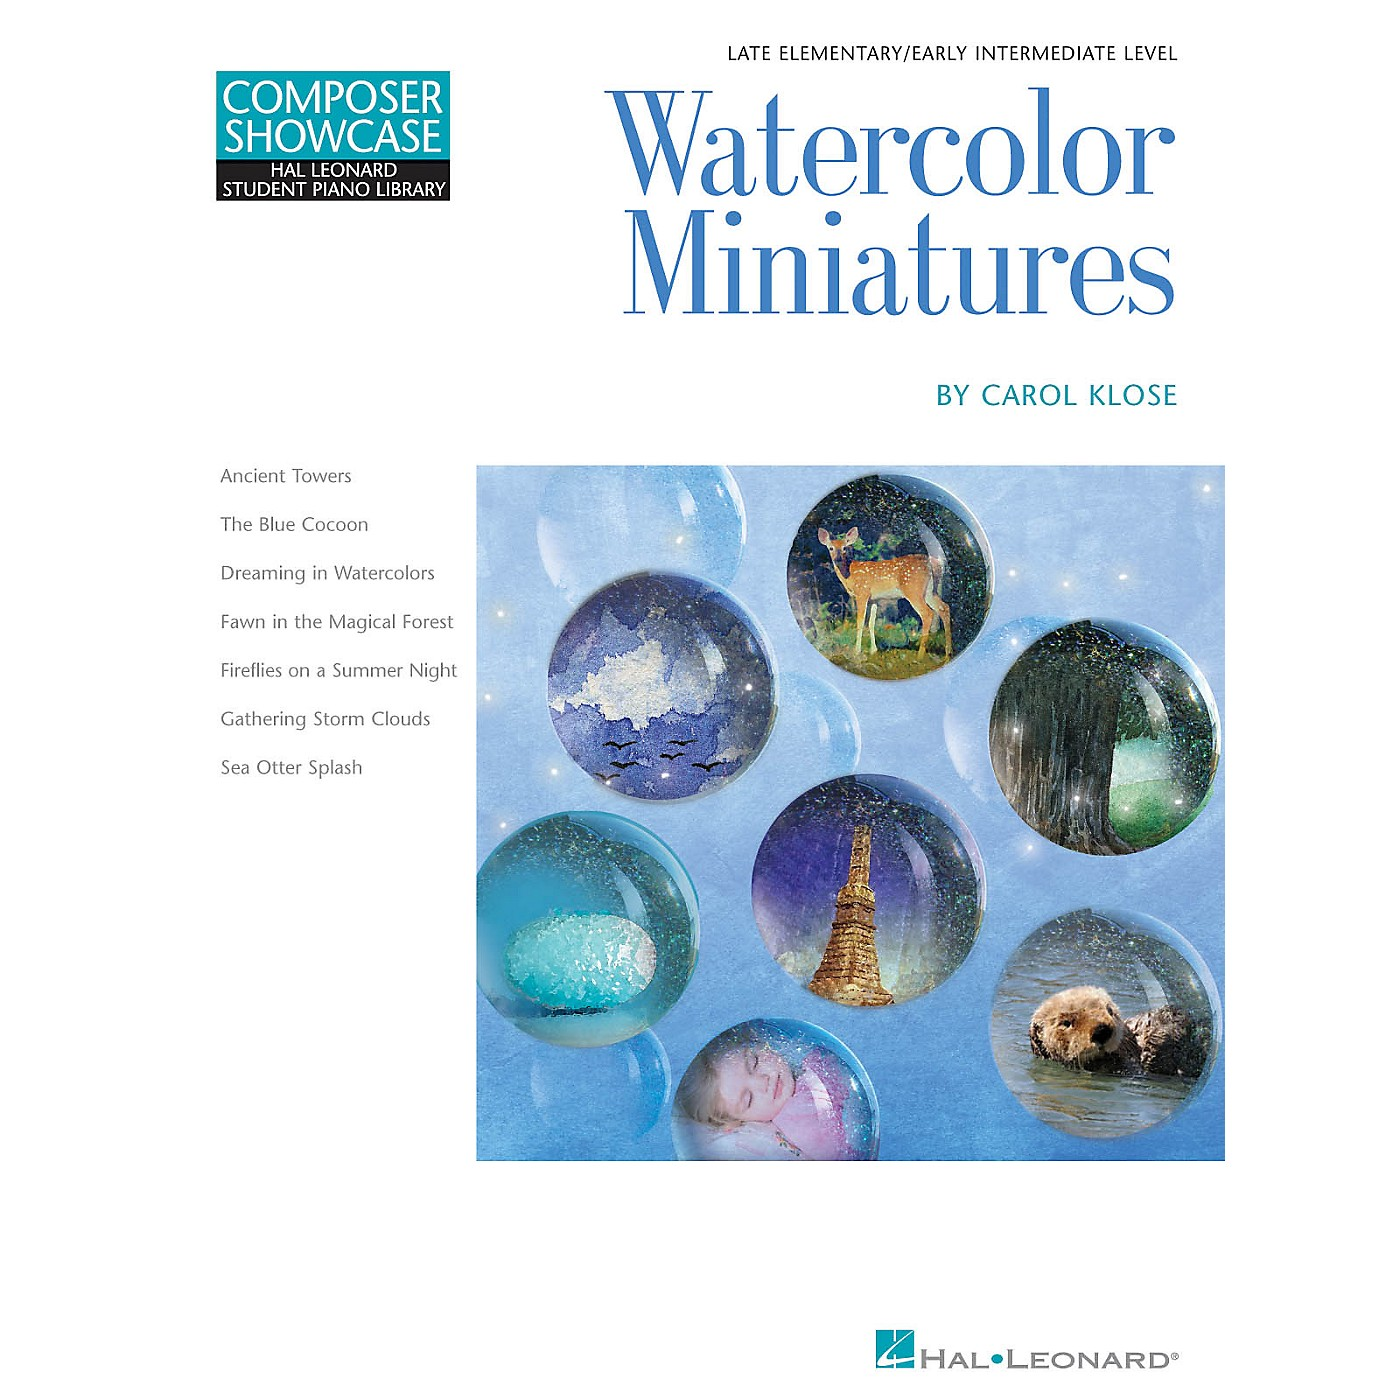 Hal Leonard Watercolor Miniatures Piano Library Series Book by Carol Klose (Level Late Elem to Early Inter) thumbnail